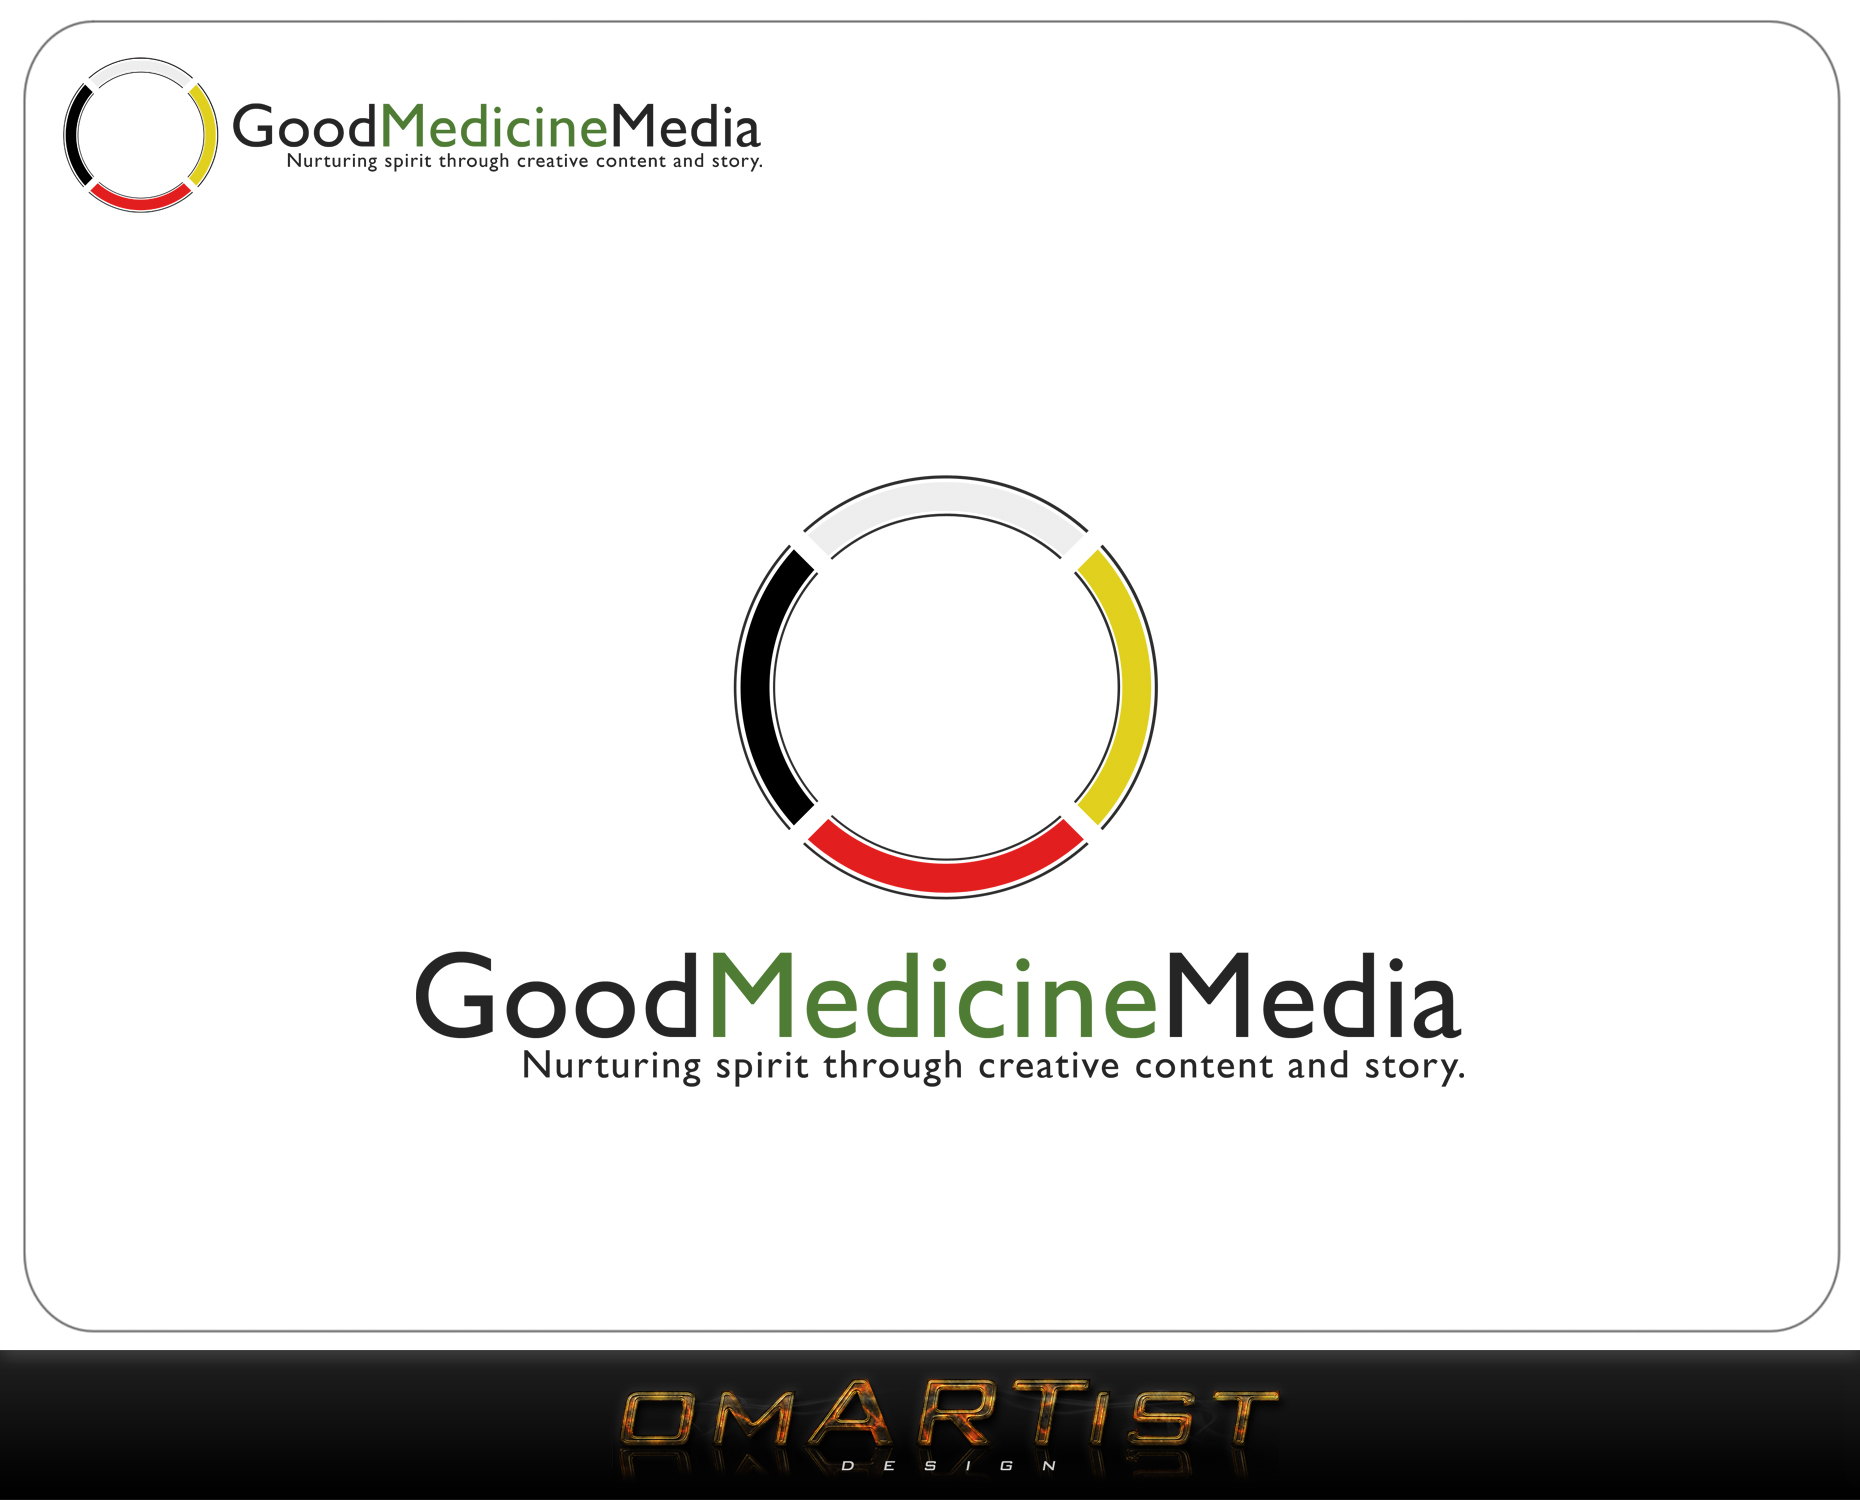 Logo Design by omARTist - Entry No. 191 in the Logo Design Contest Good Medicine Media Logo Design.